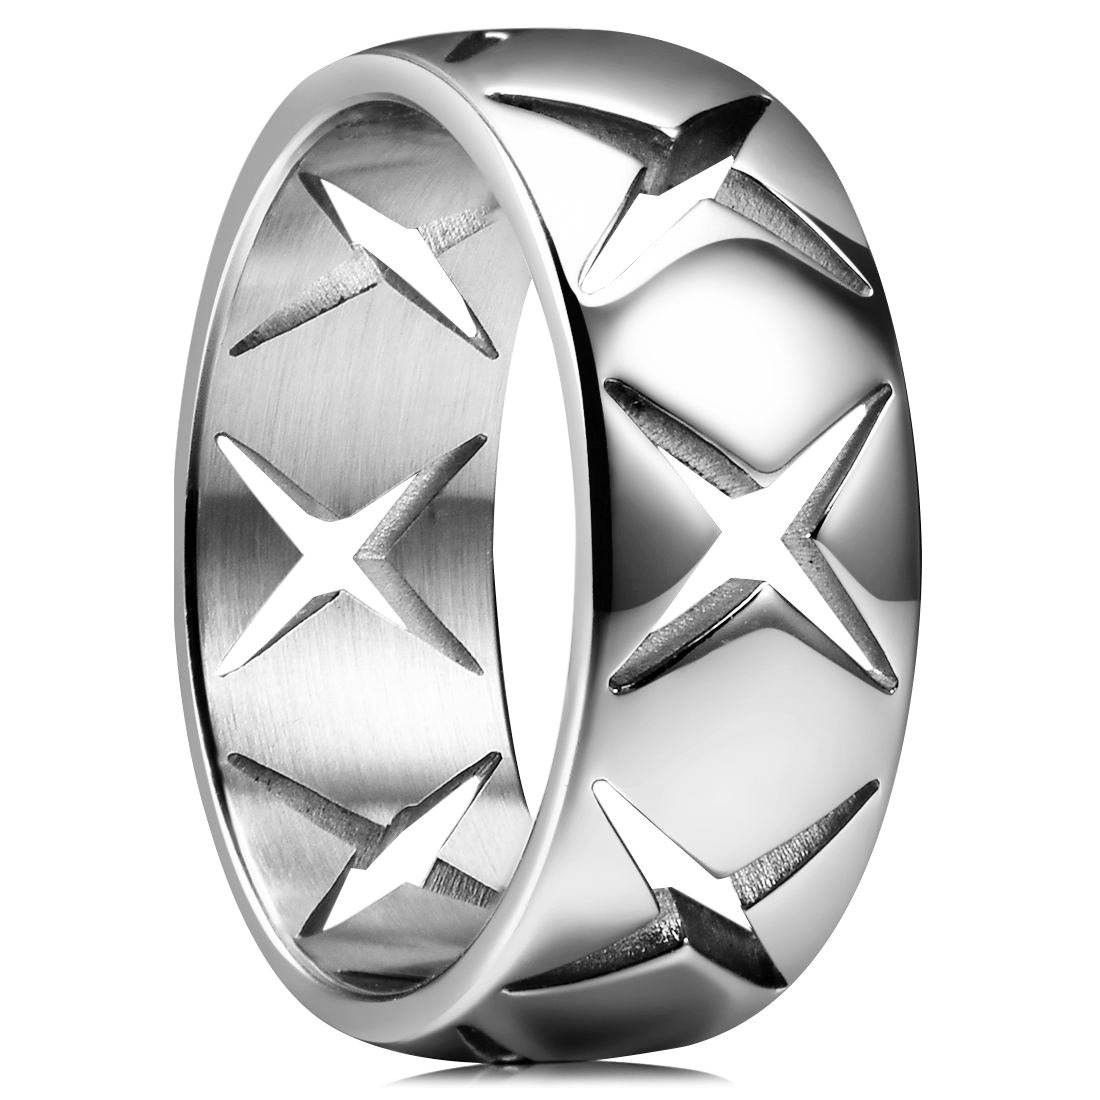 King Will TIME 8mm 316 Stainless Steel Wedding Band Original Color Ring with Cross Hollow(10.5)